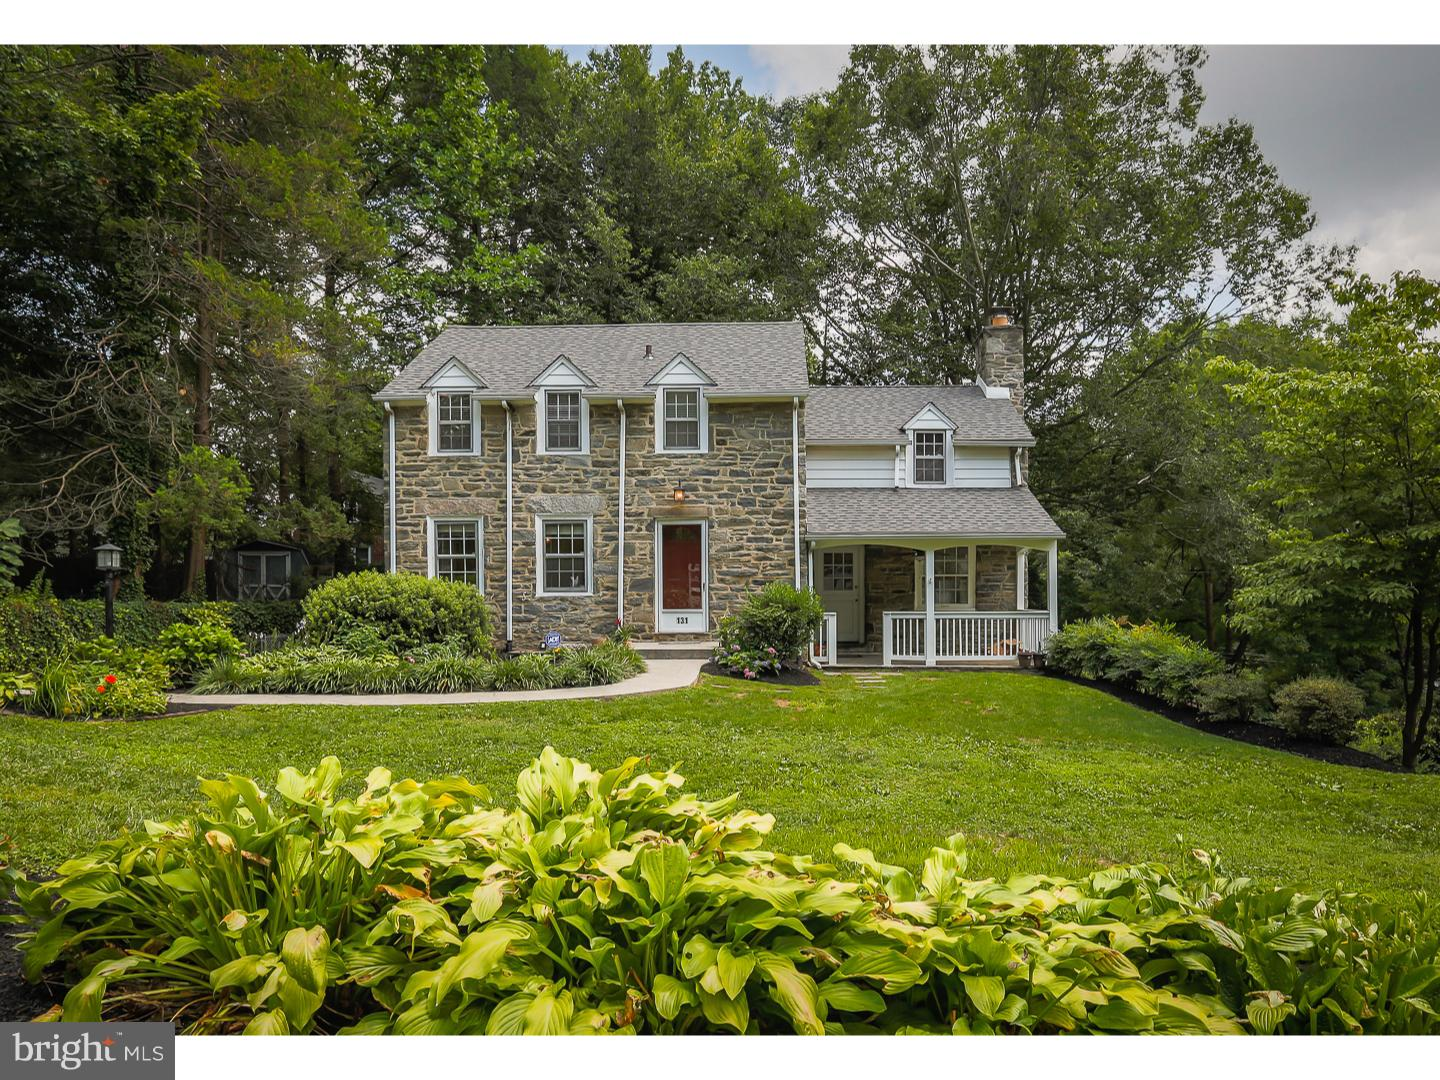 131 Old Forest Road Wynnewood, PA 19096